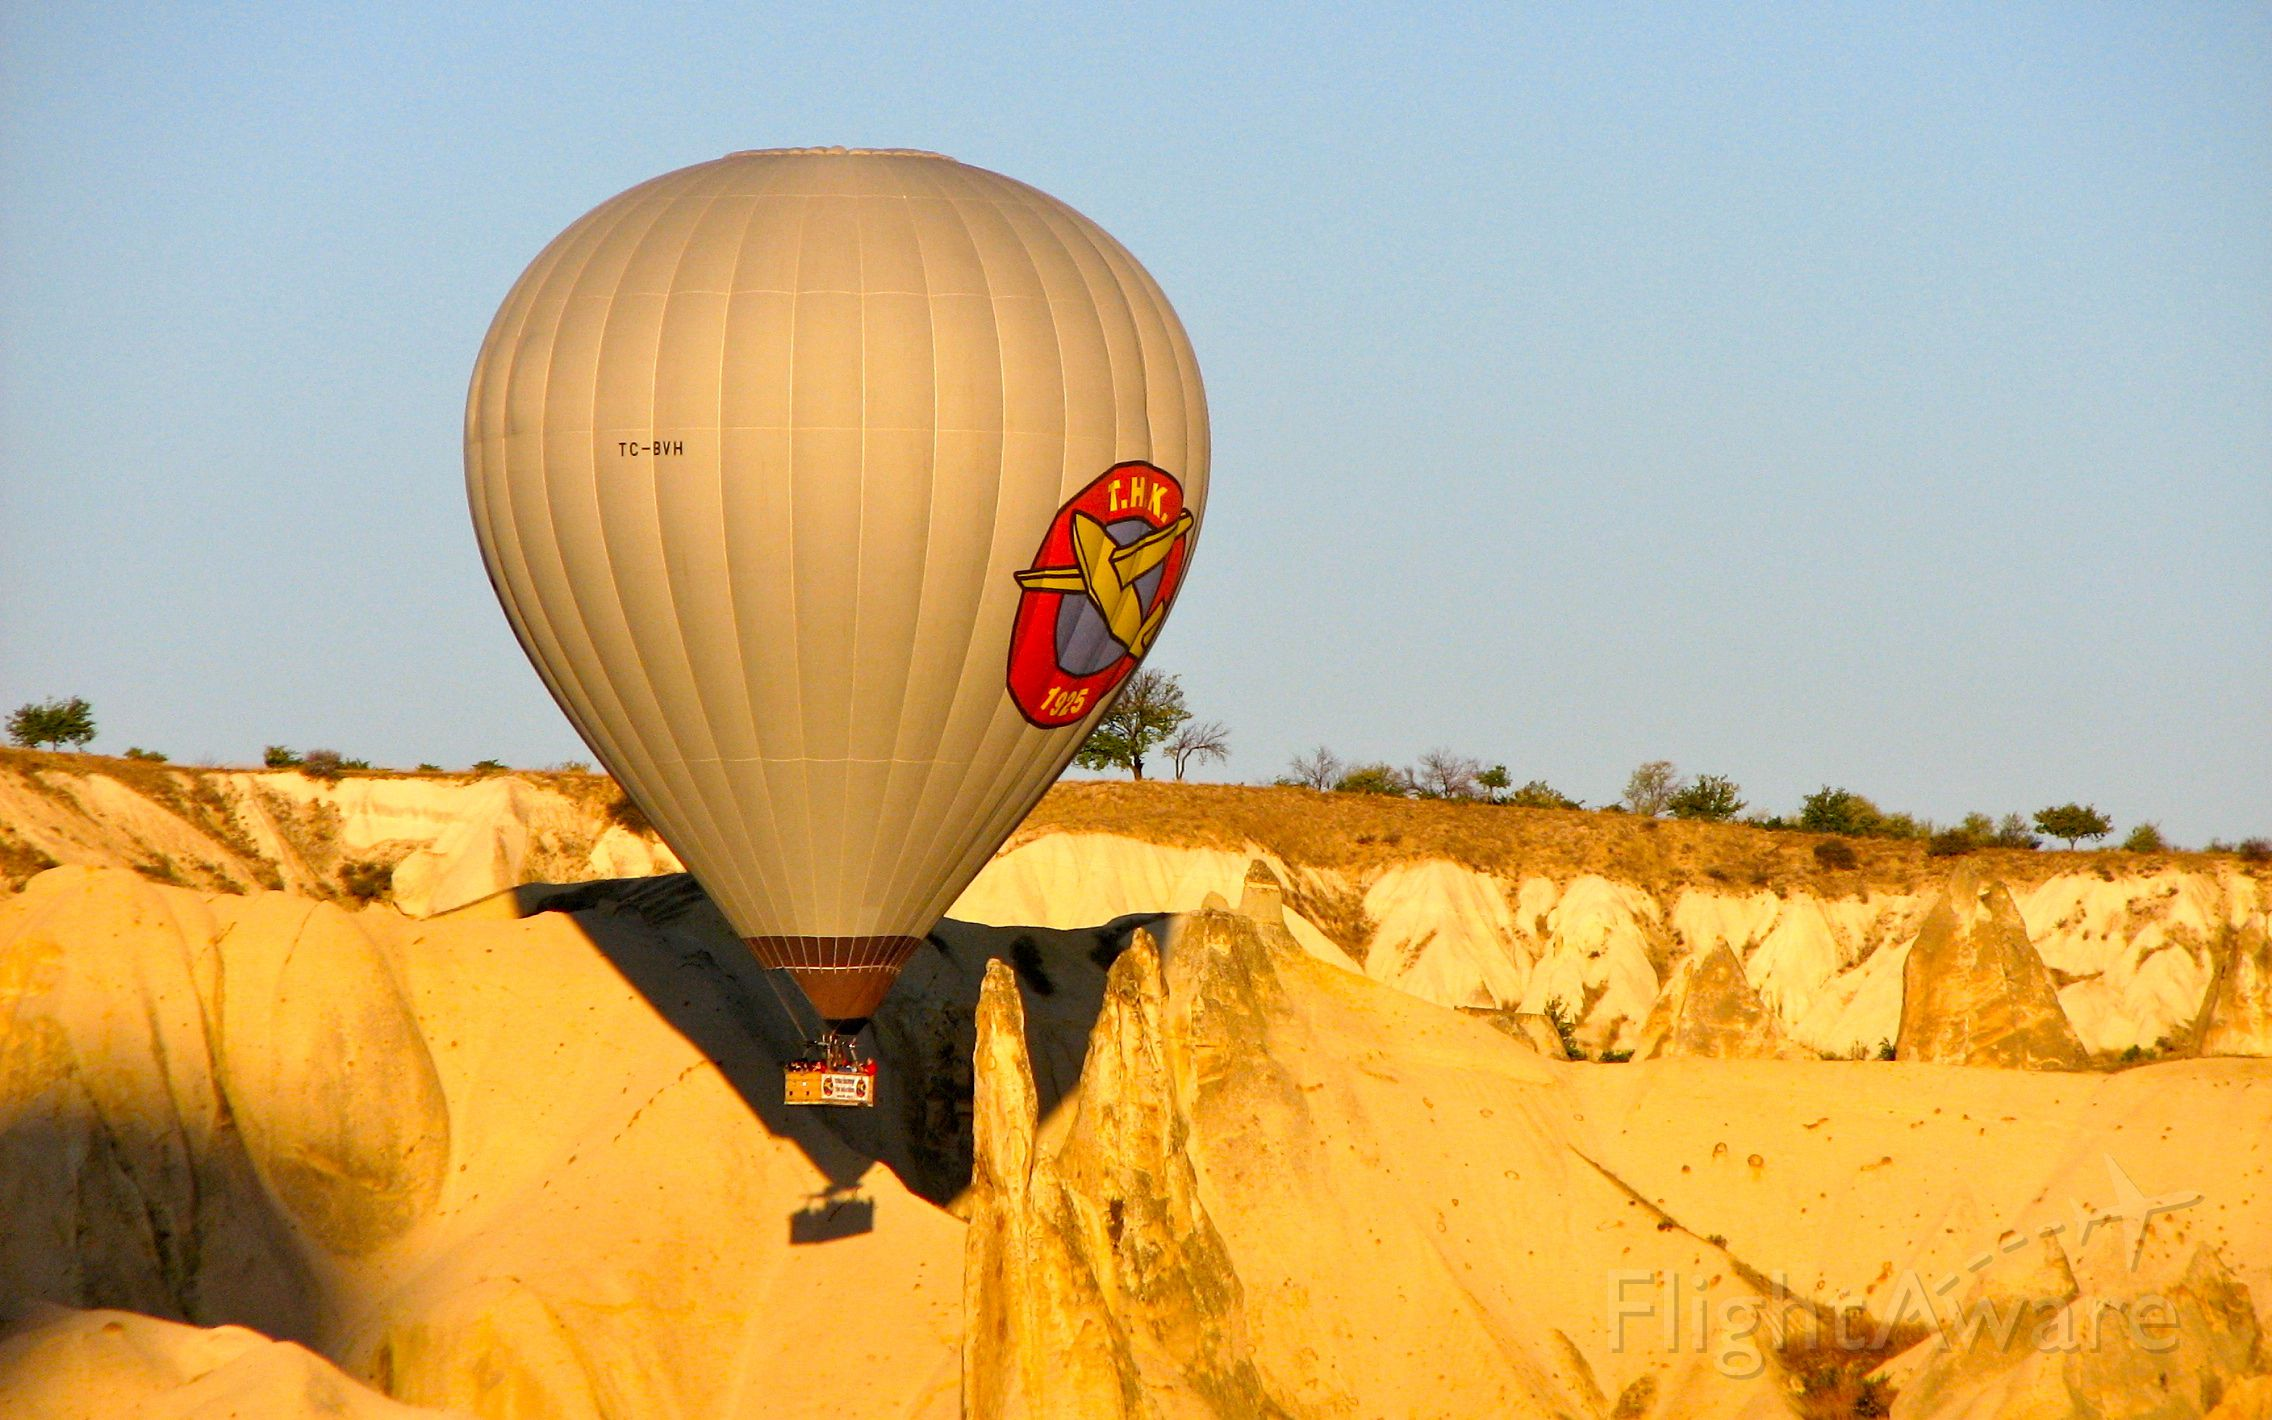 Unknown/Generic Balloon (TC-BVH) - TC-BVH climbing out of the Valley of Love, Cappadocia, Turkey